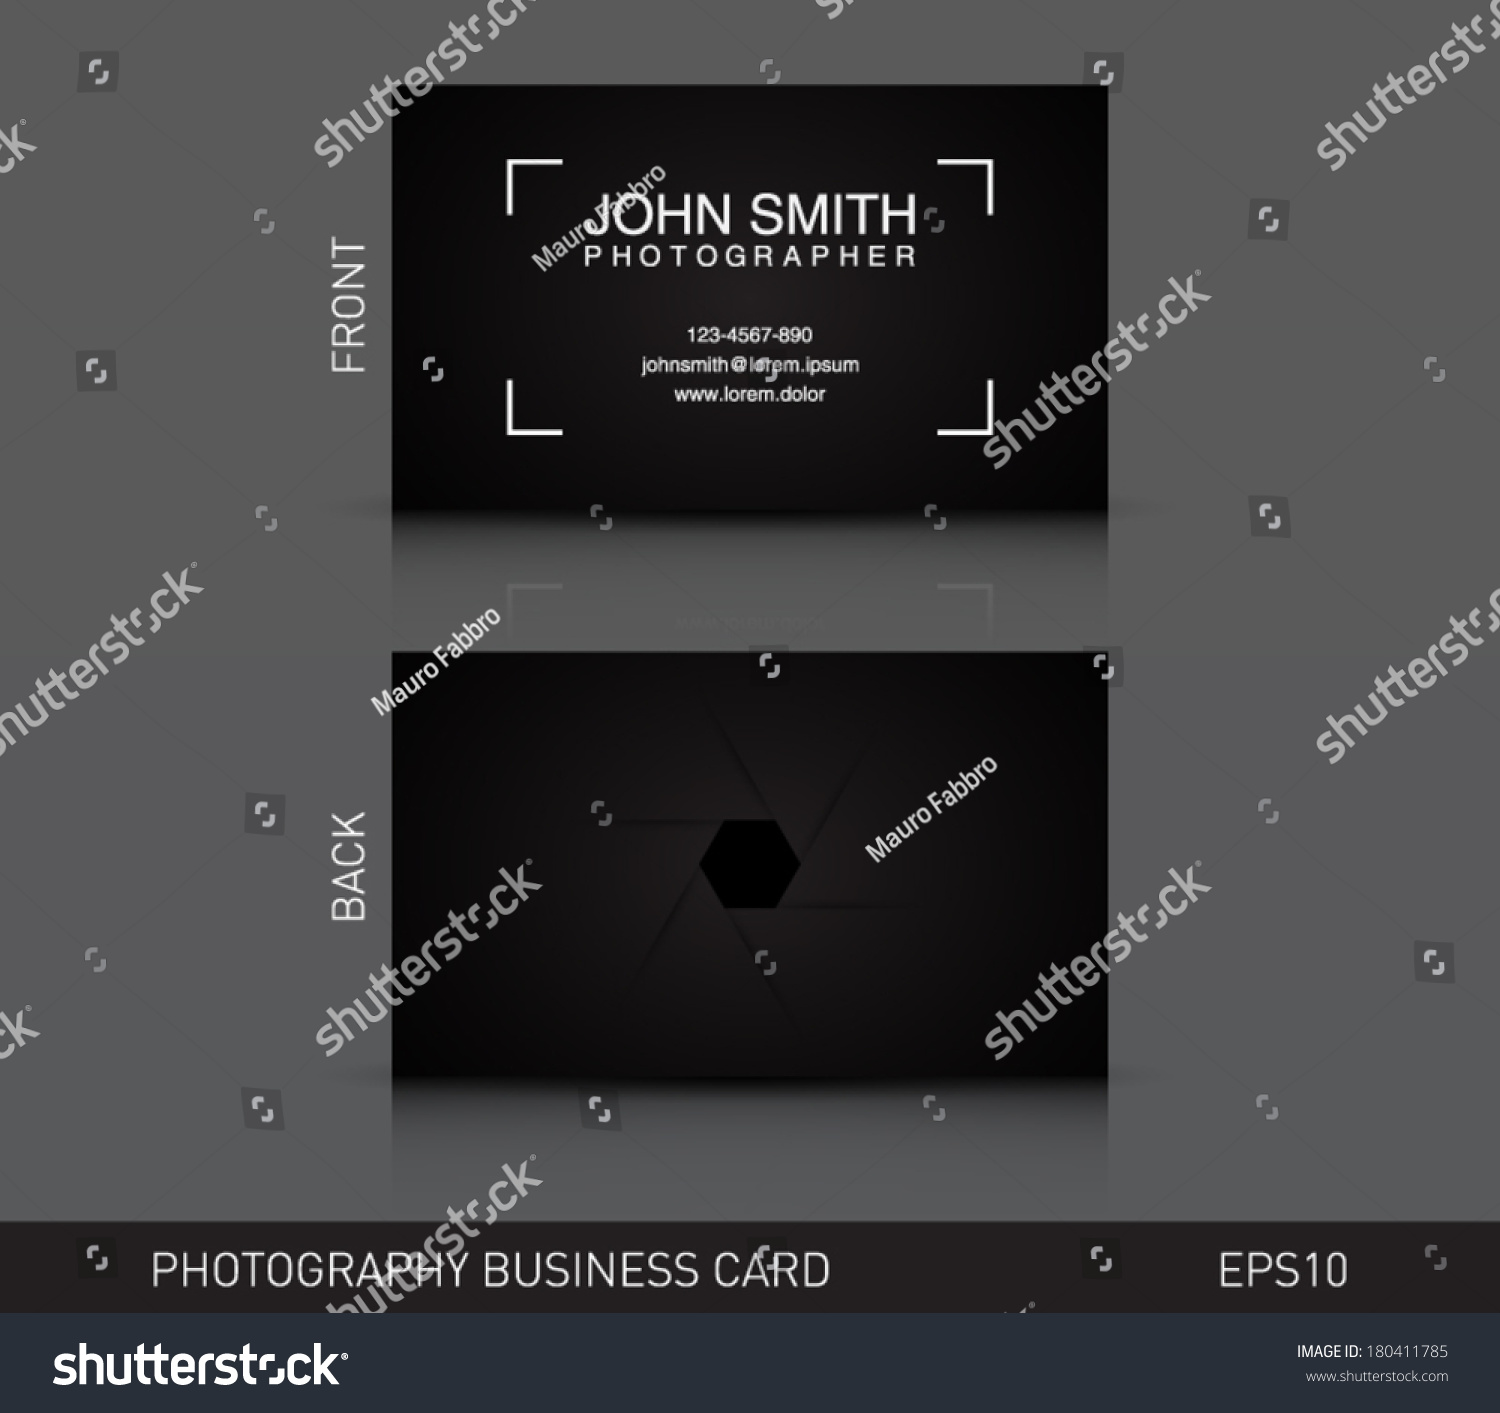 Photographer Business Card Template Photography Photo Stock Vector ...